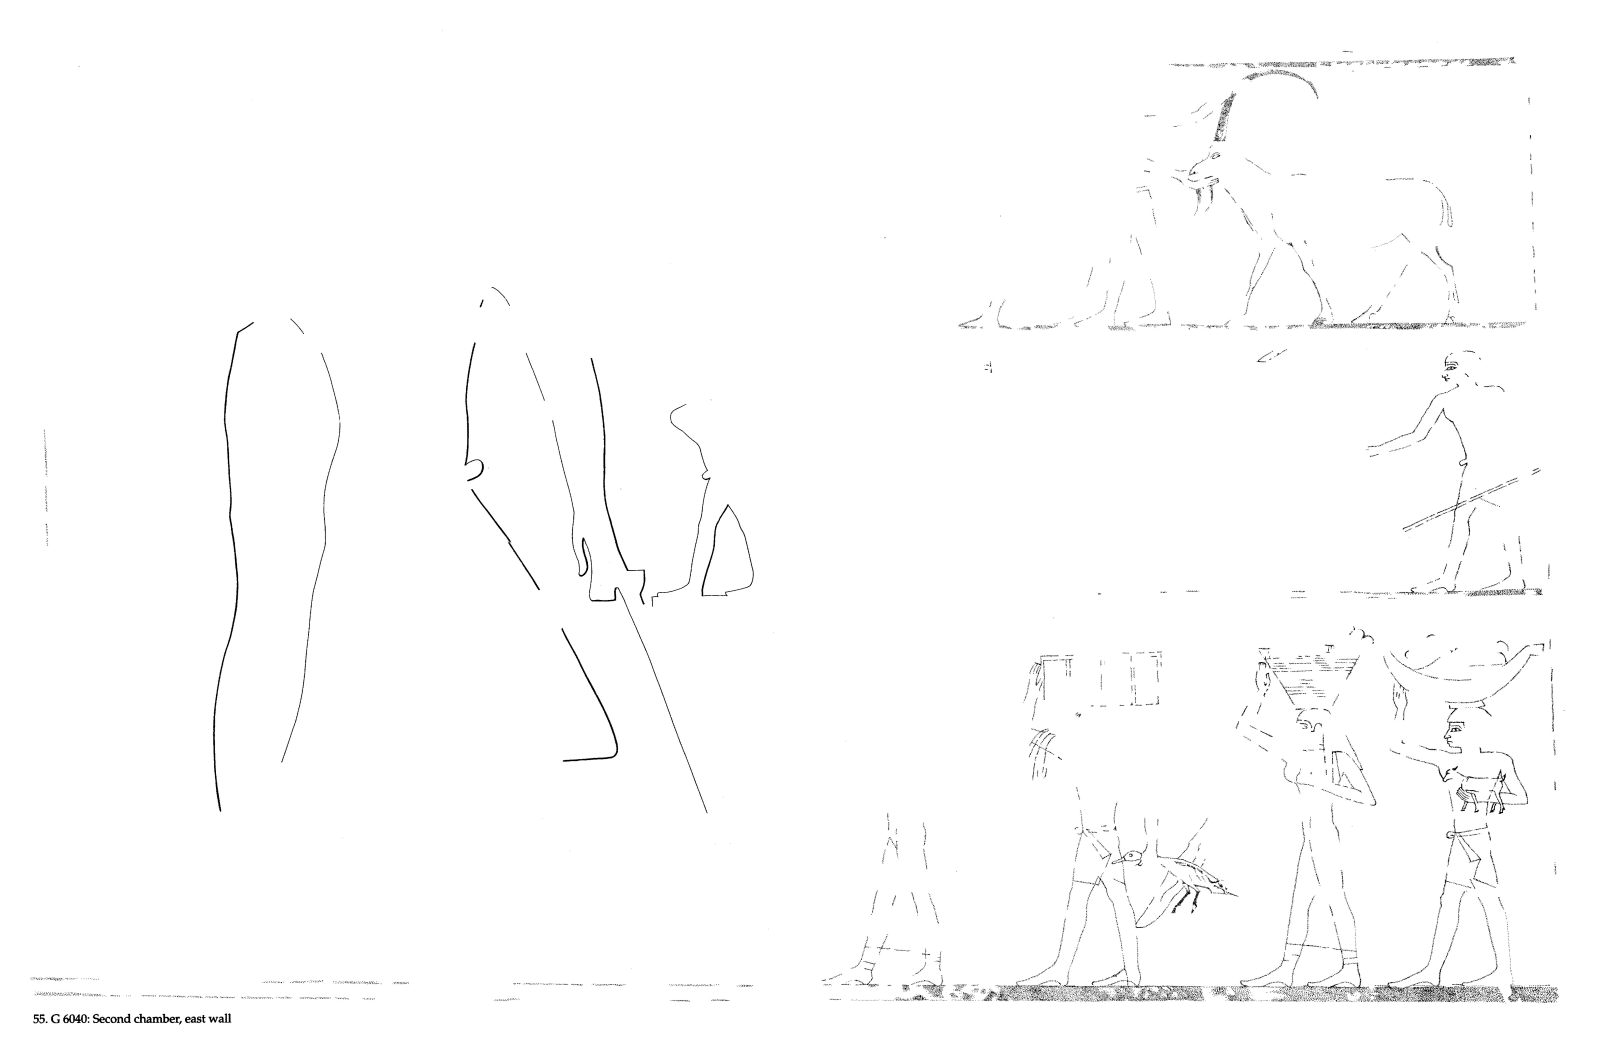 Drawings: G 6040: relief from second chamber, E wall